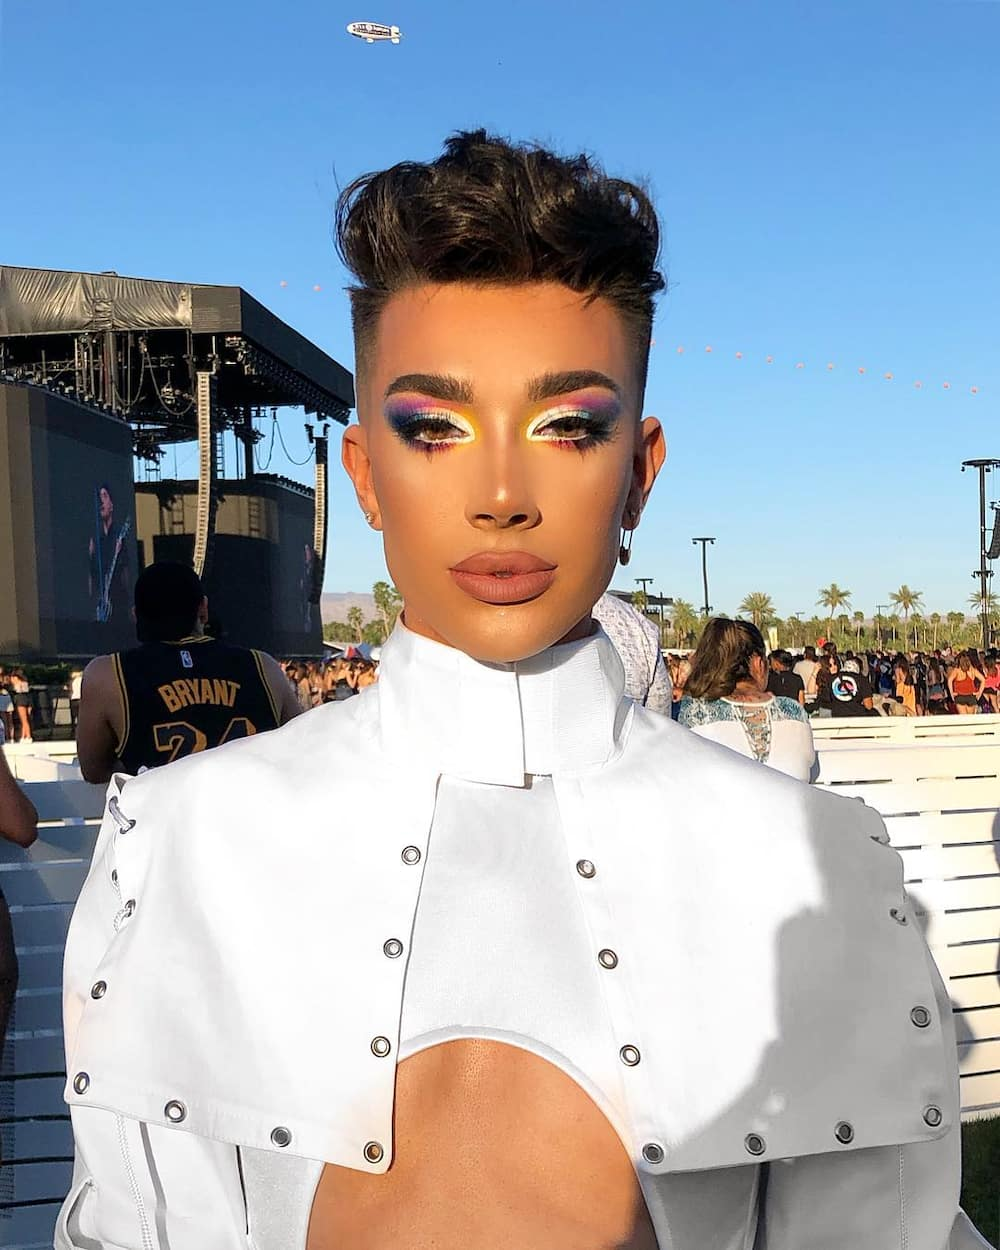 James Charles gender, brother, net worth, rise to fame